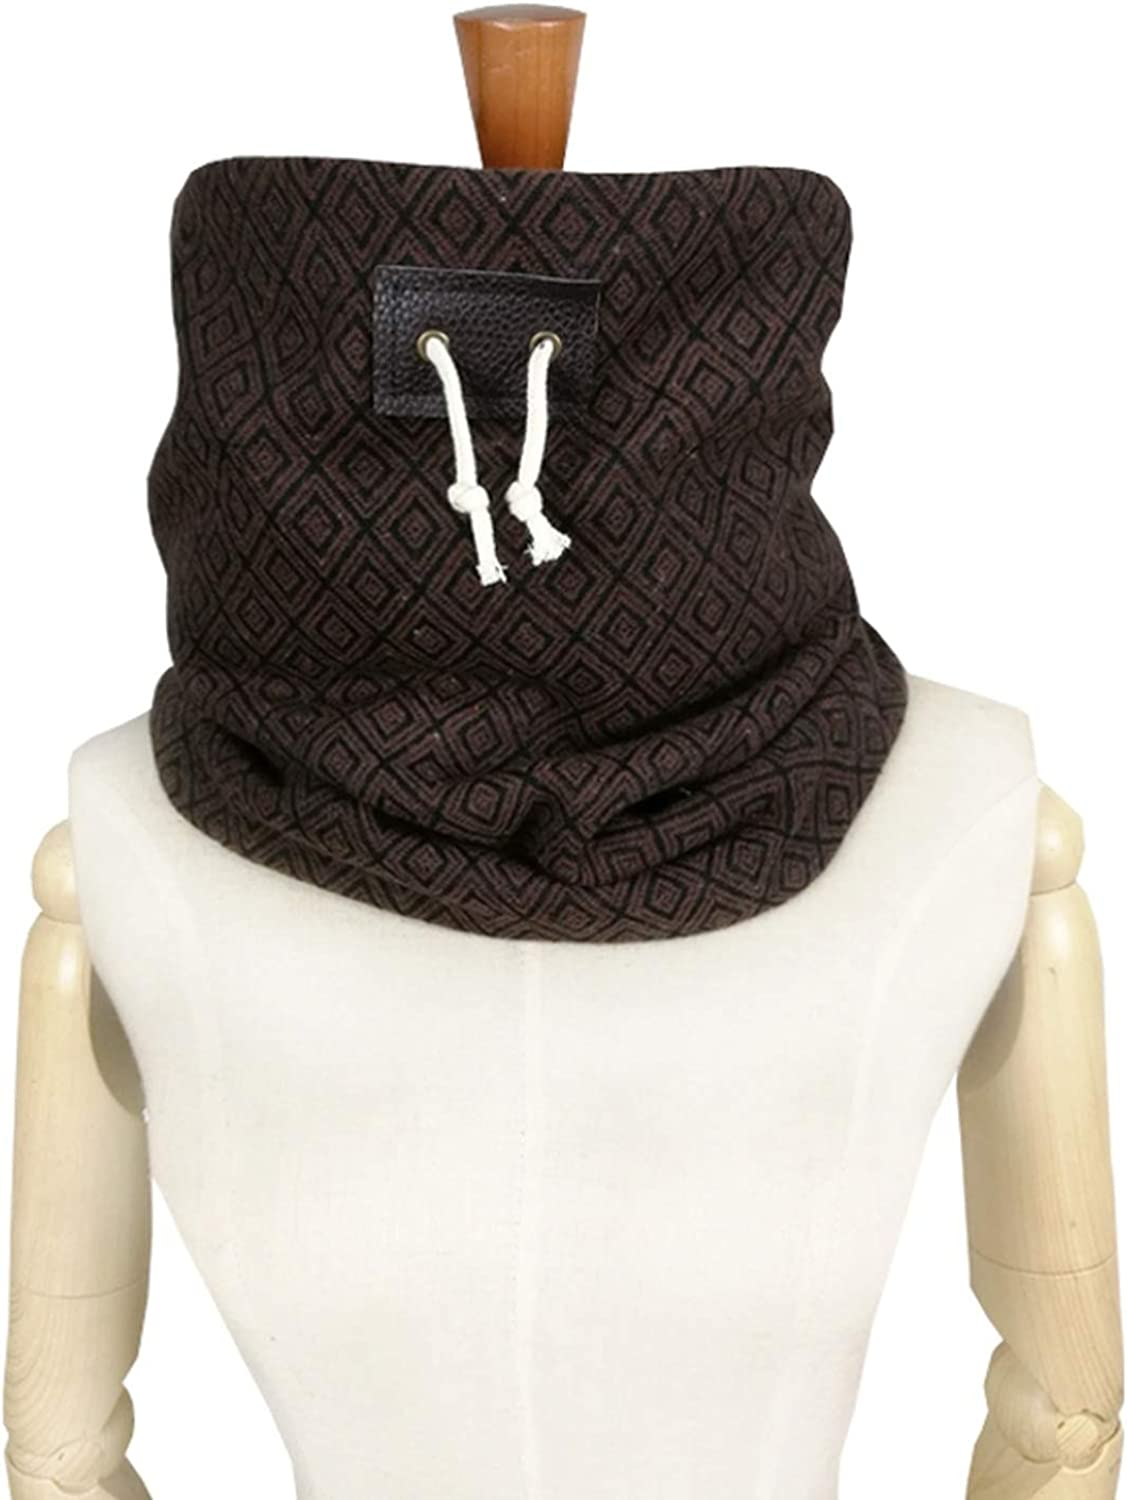 mens Winter scarf Unisex neck warmer boyfriend gift face mask Jersey Knit Scarf Infinity Scarves